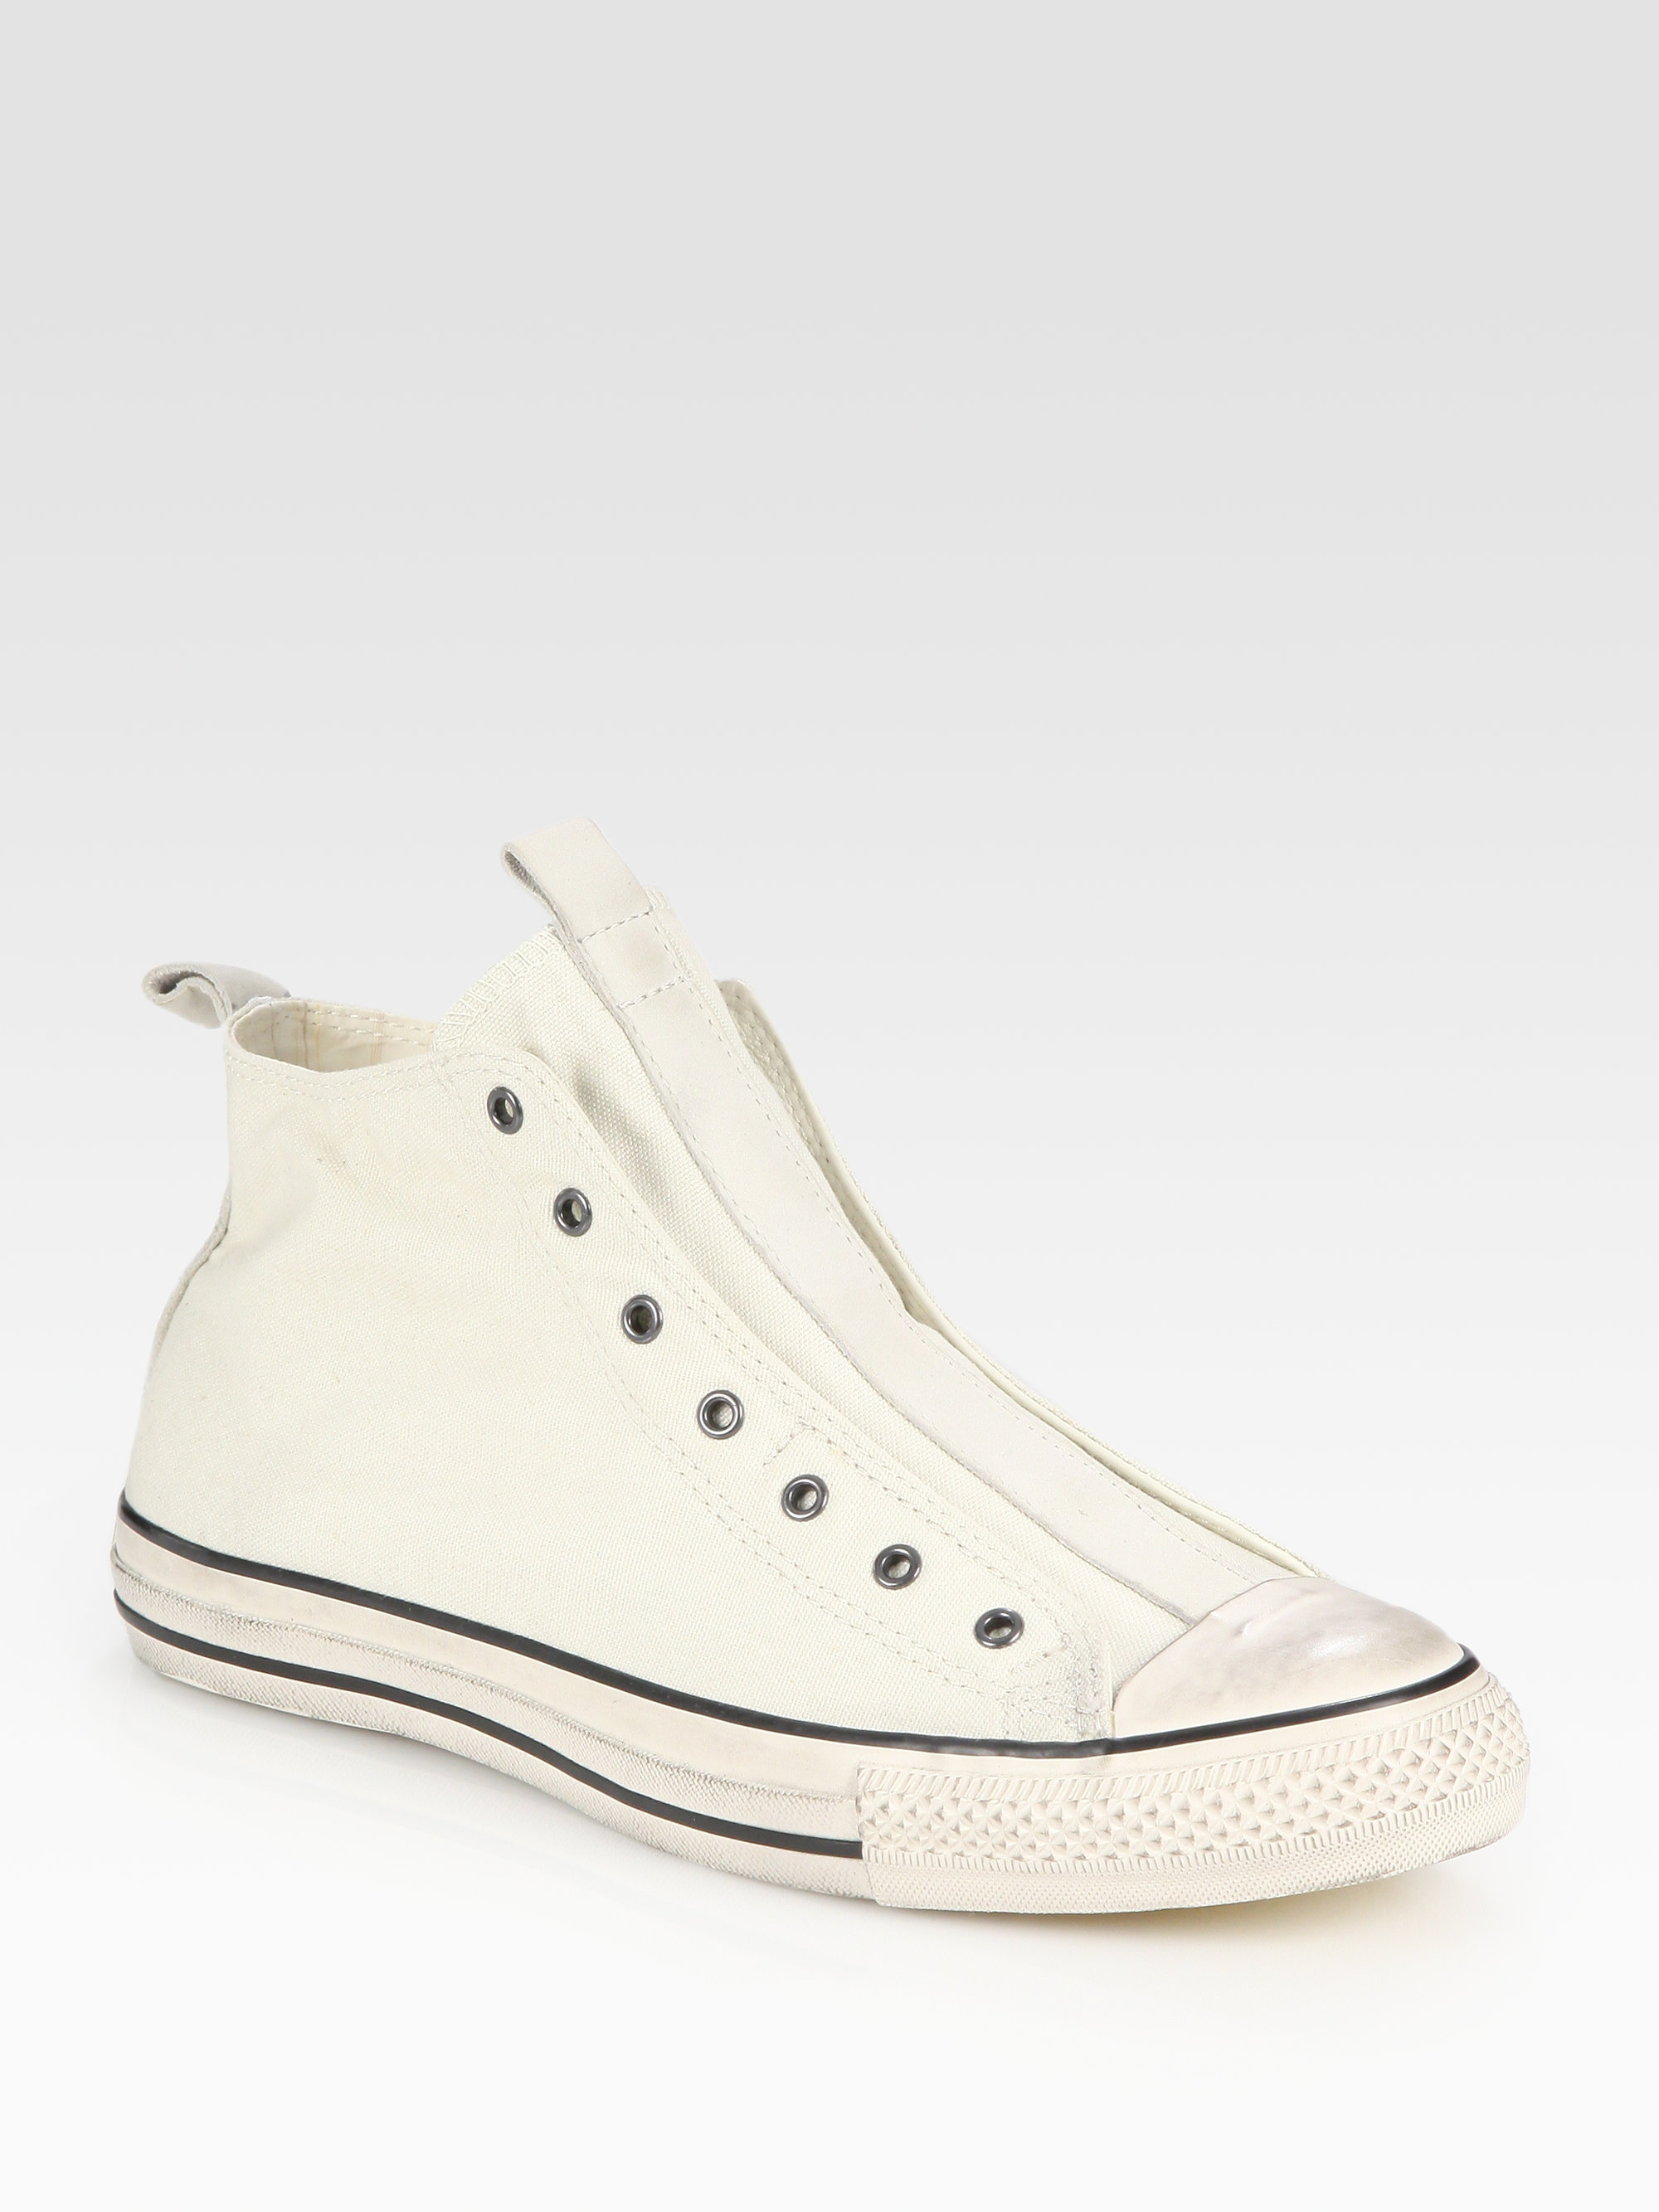 6c5a5f3c9084 ... where to buy gallery. previously sold at saks fifth avenue mens john  varvatos converse 333d2